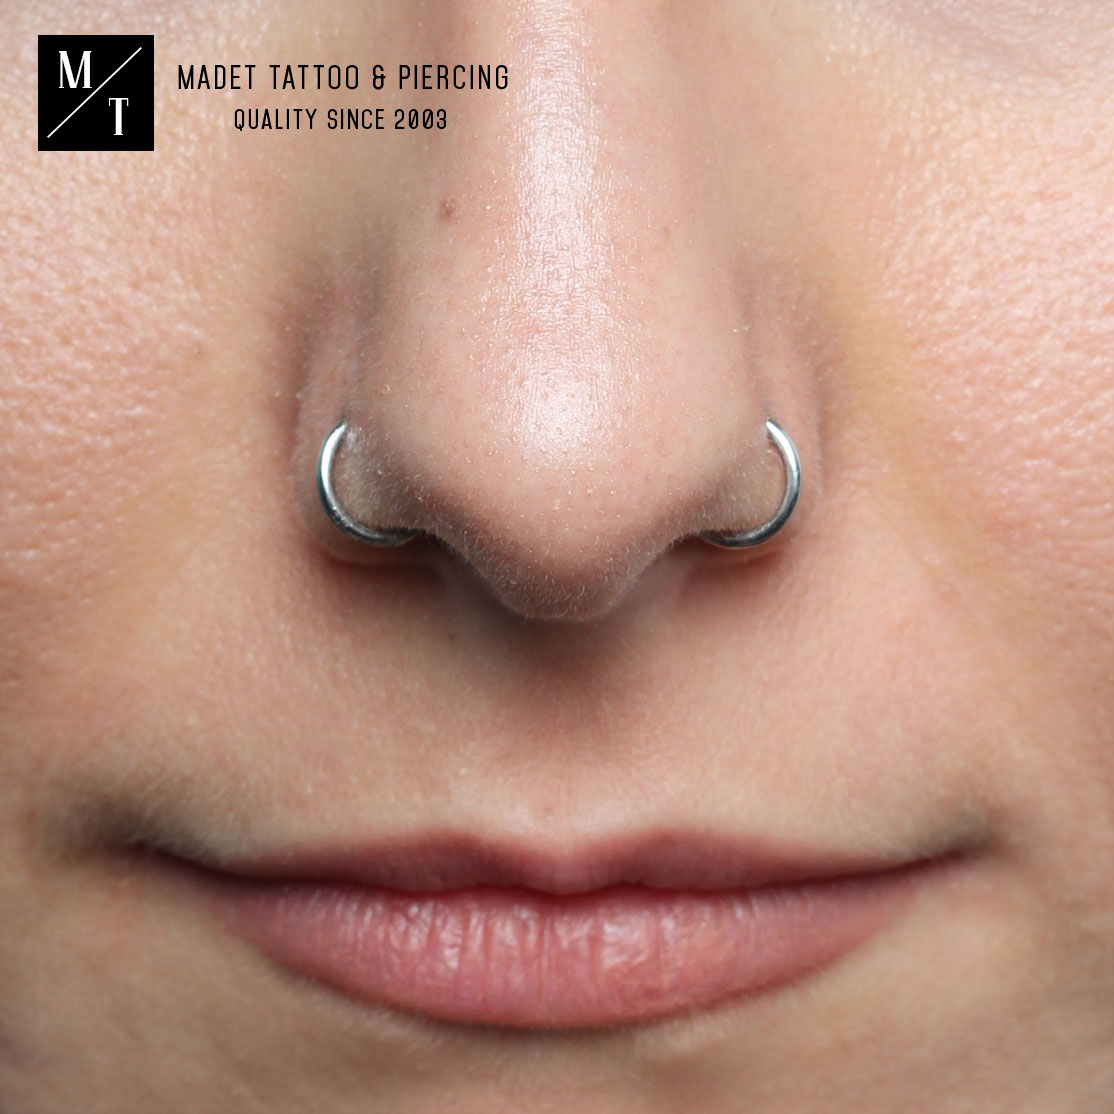 Double Nostril Piercing